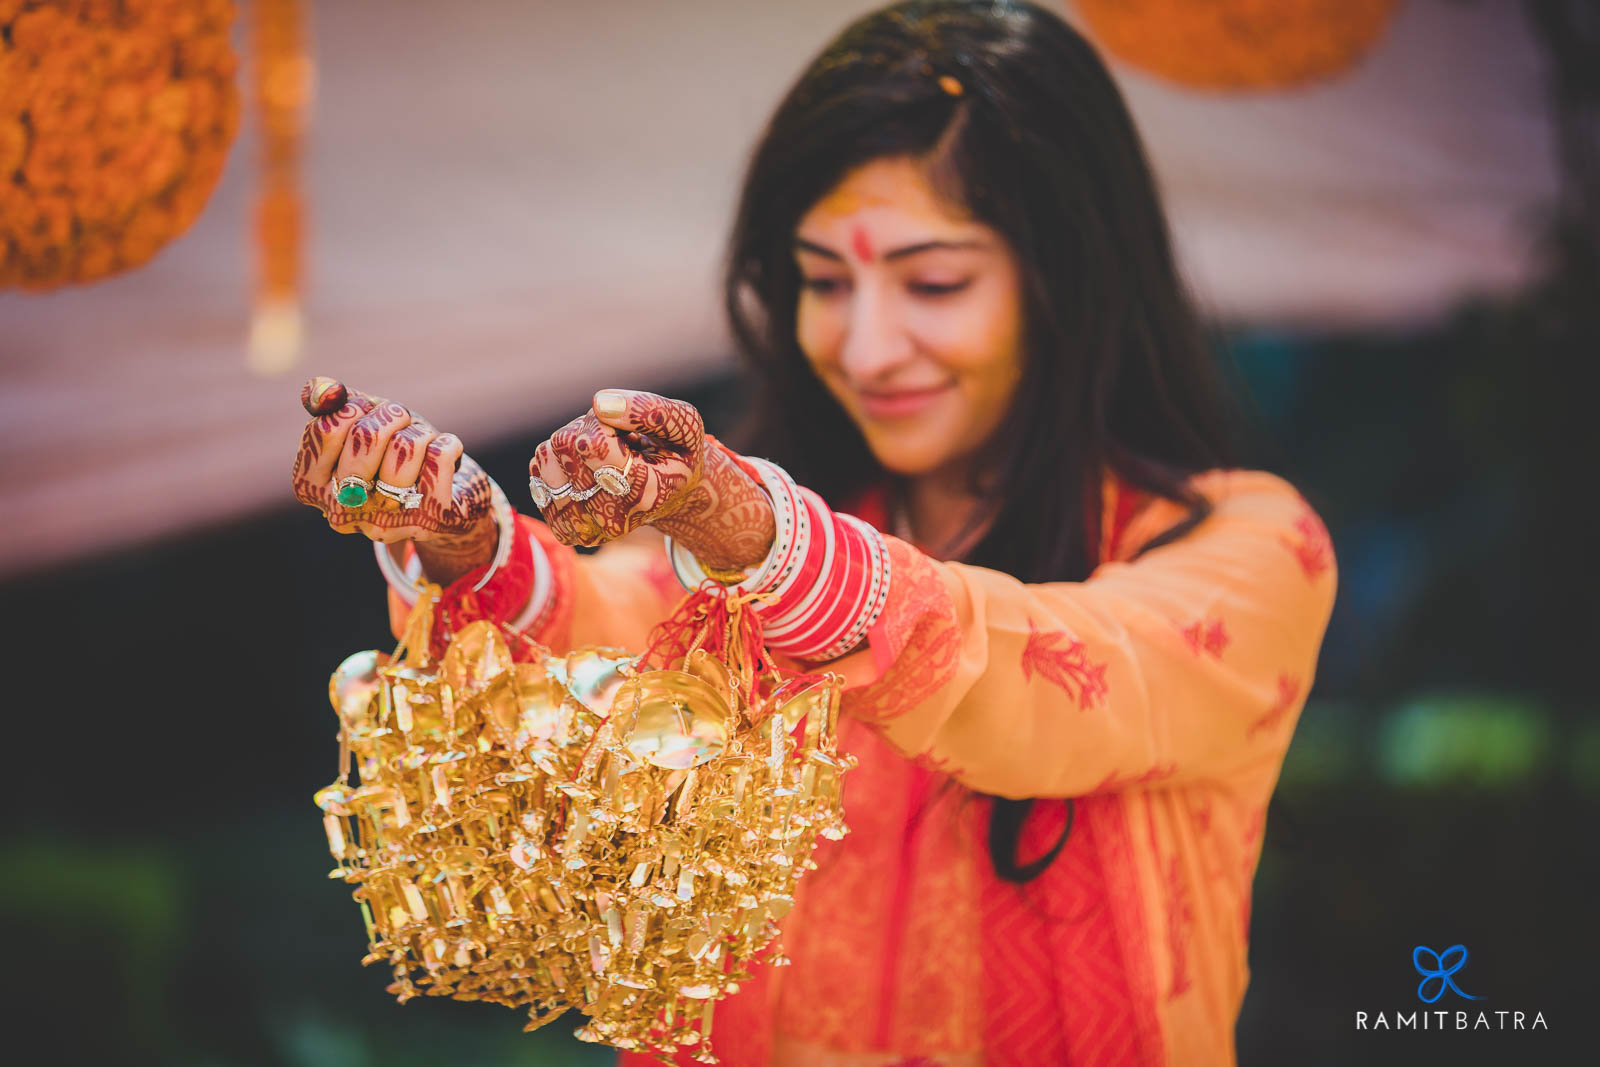 Kaleerey at the Chooda Ceremony - Indian wedding traditions and customs